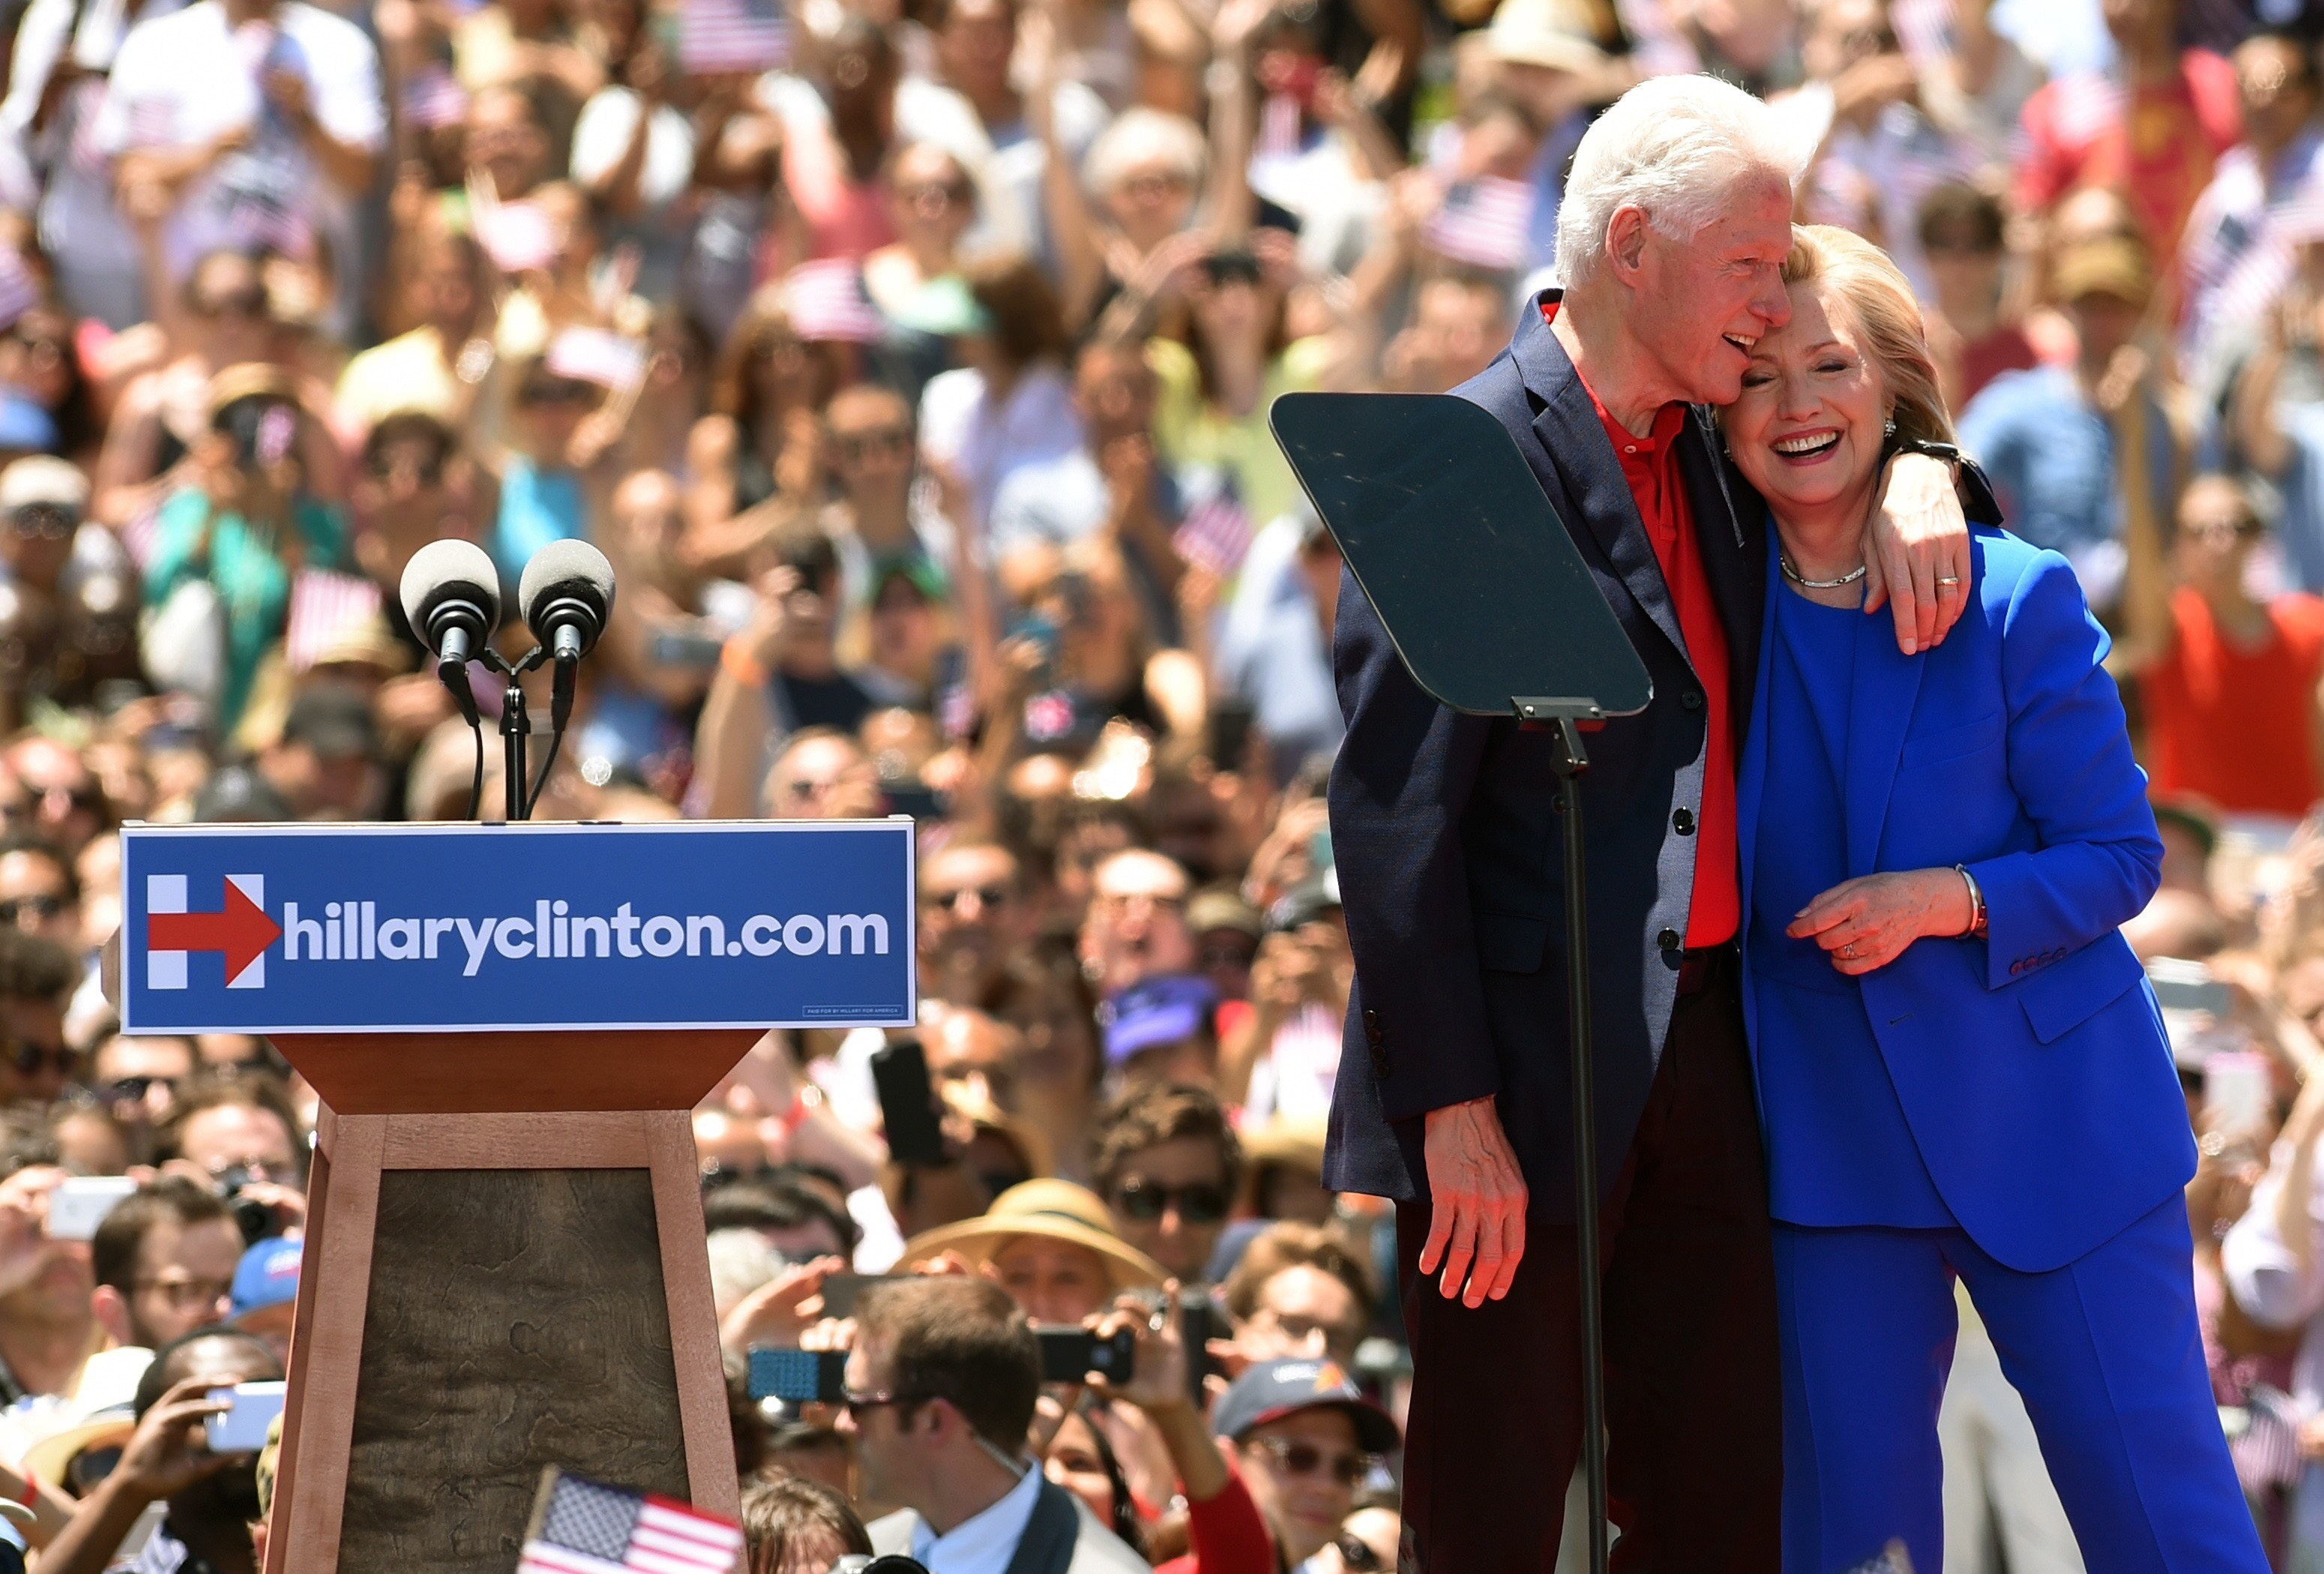 Former Secretary of State Hillary Clinton and Former US President Bill Clinton hug after she officially launched her campaign for the Democratic presidential nomination during a speech at the Franklin D. Roosevelt Four Freedoms Park in New York on June 13, 2015.